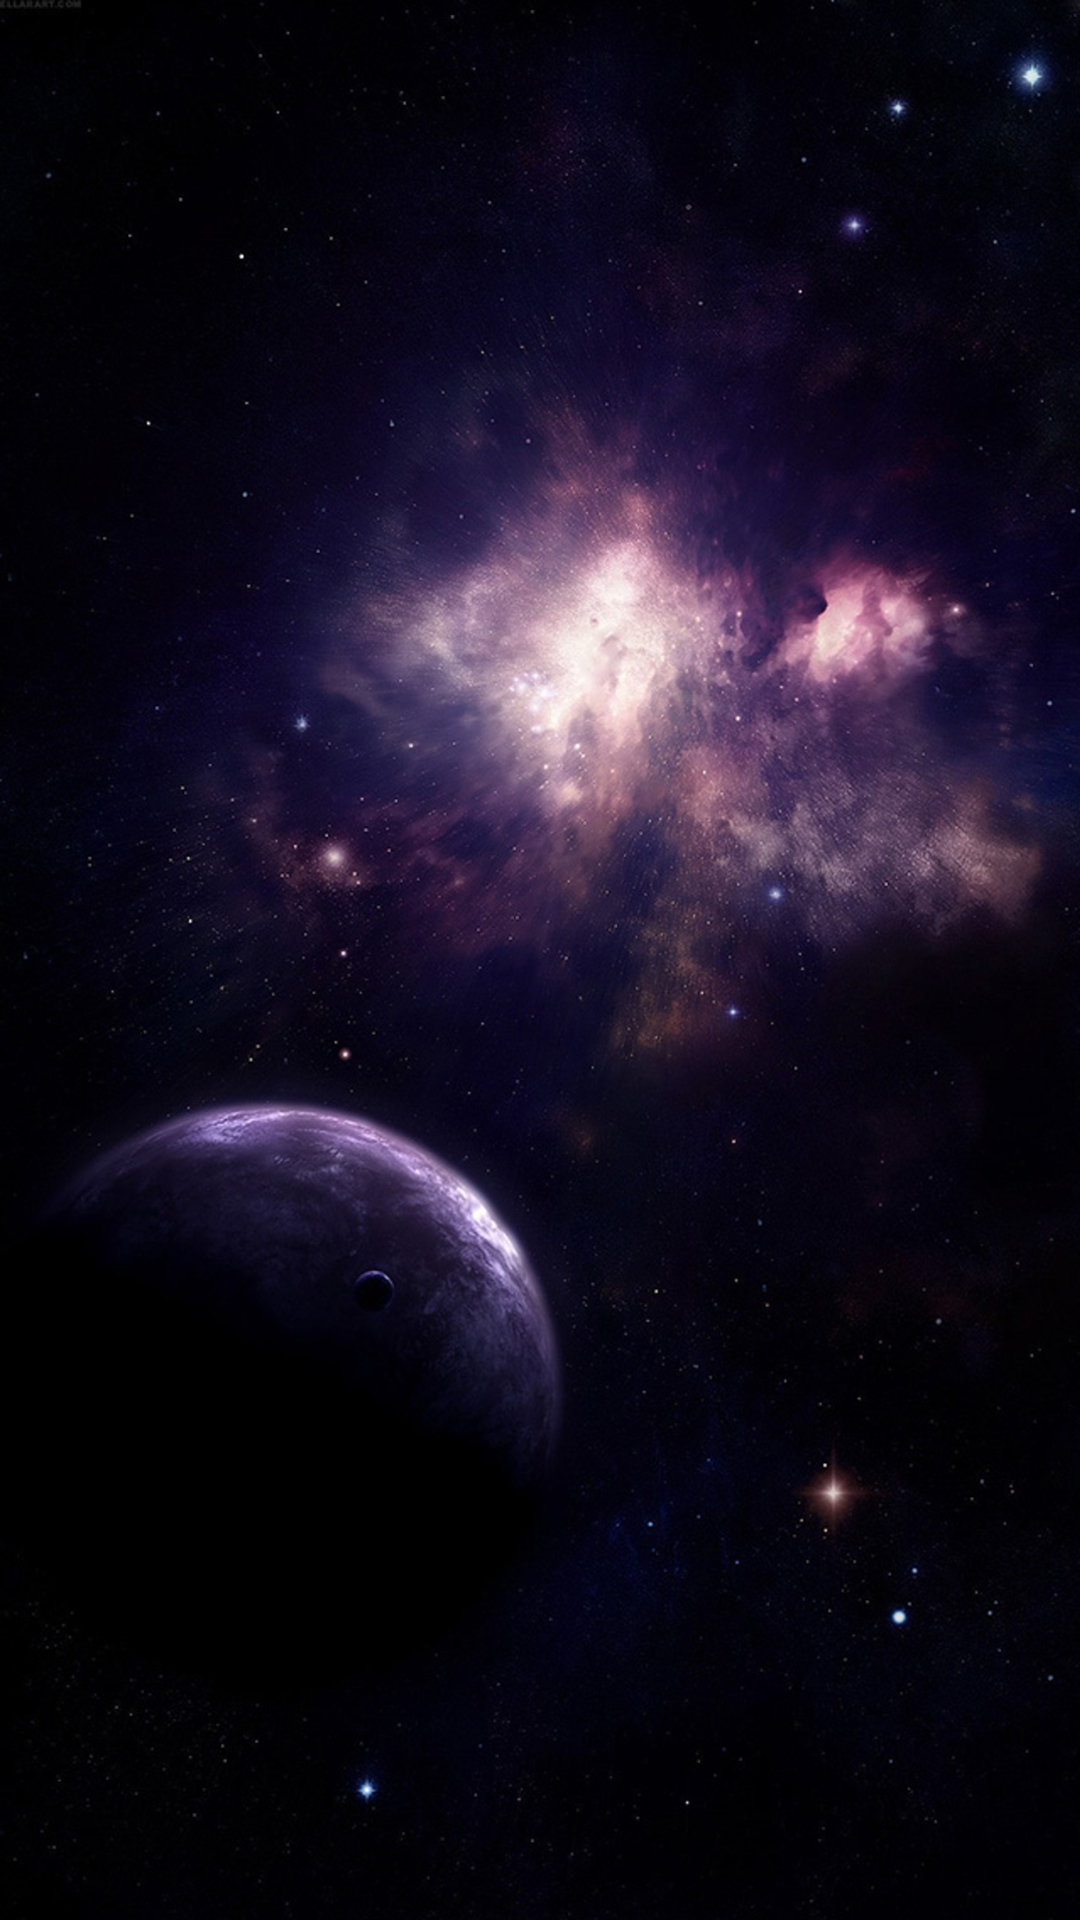 Universe-Planet-Nebula-Shiny-Outer-SPace-View-iphone-wallpaper